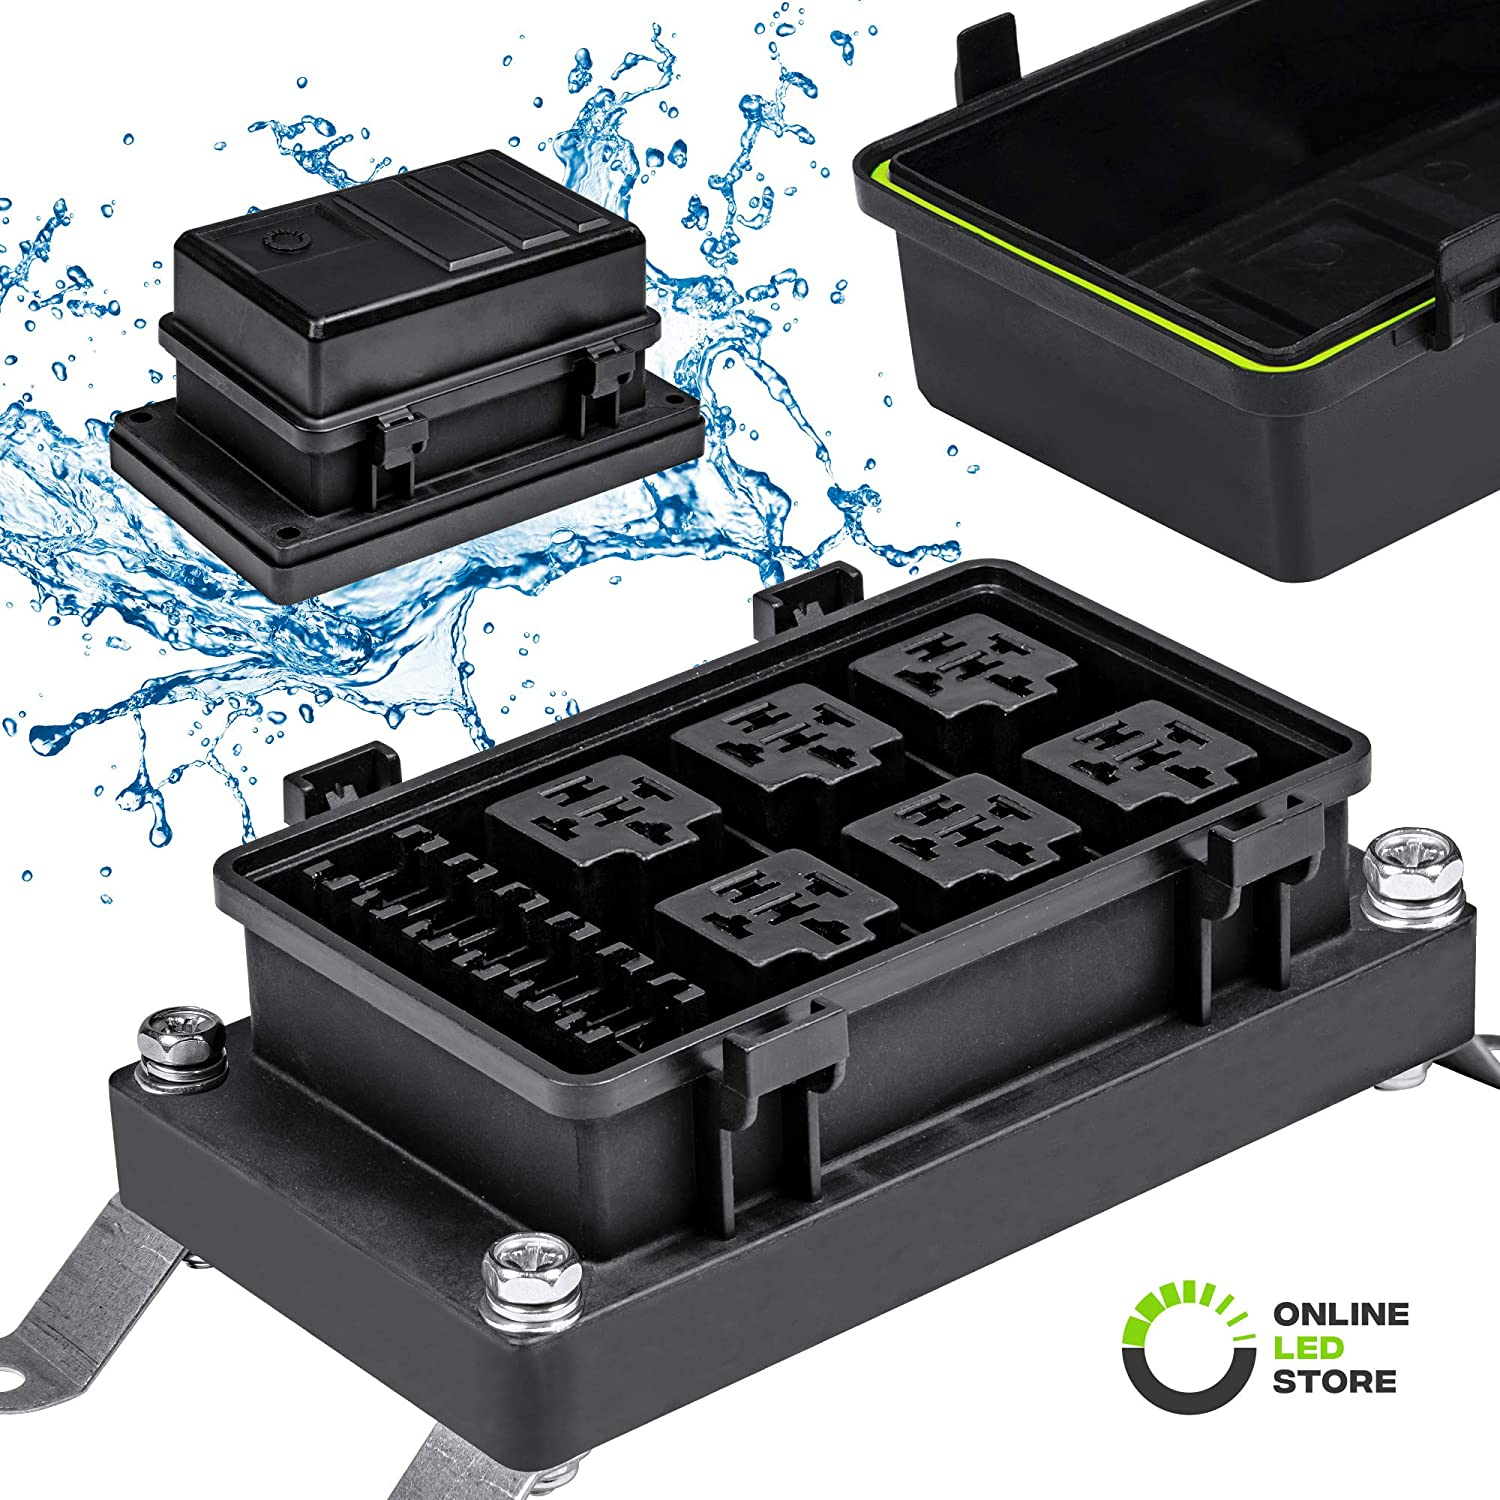 Fuse Box for Jeep Boat Car Or Truck Silicone Seals 6-Slot Blade Fuse Holder 6-Slot Bosch Style Relay Holder ONLINE LED STORE Waterproof Relay//Fuse Block for Automotive and Marine